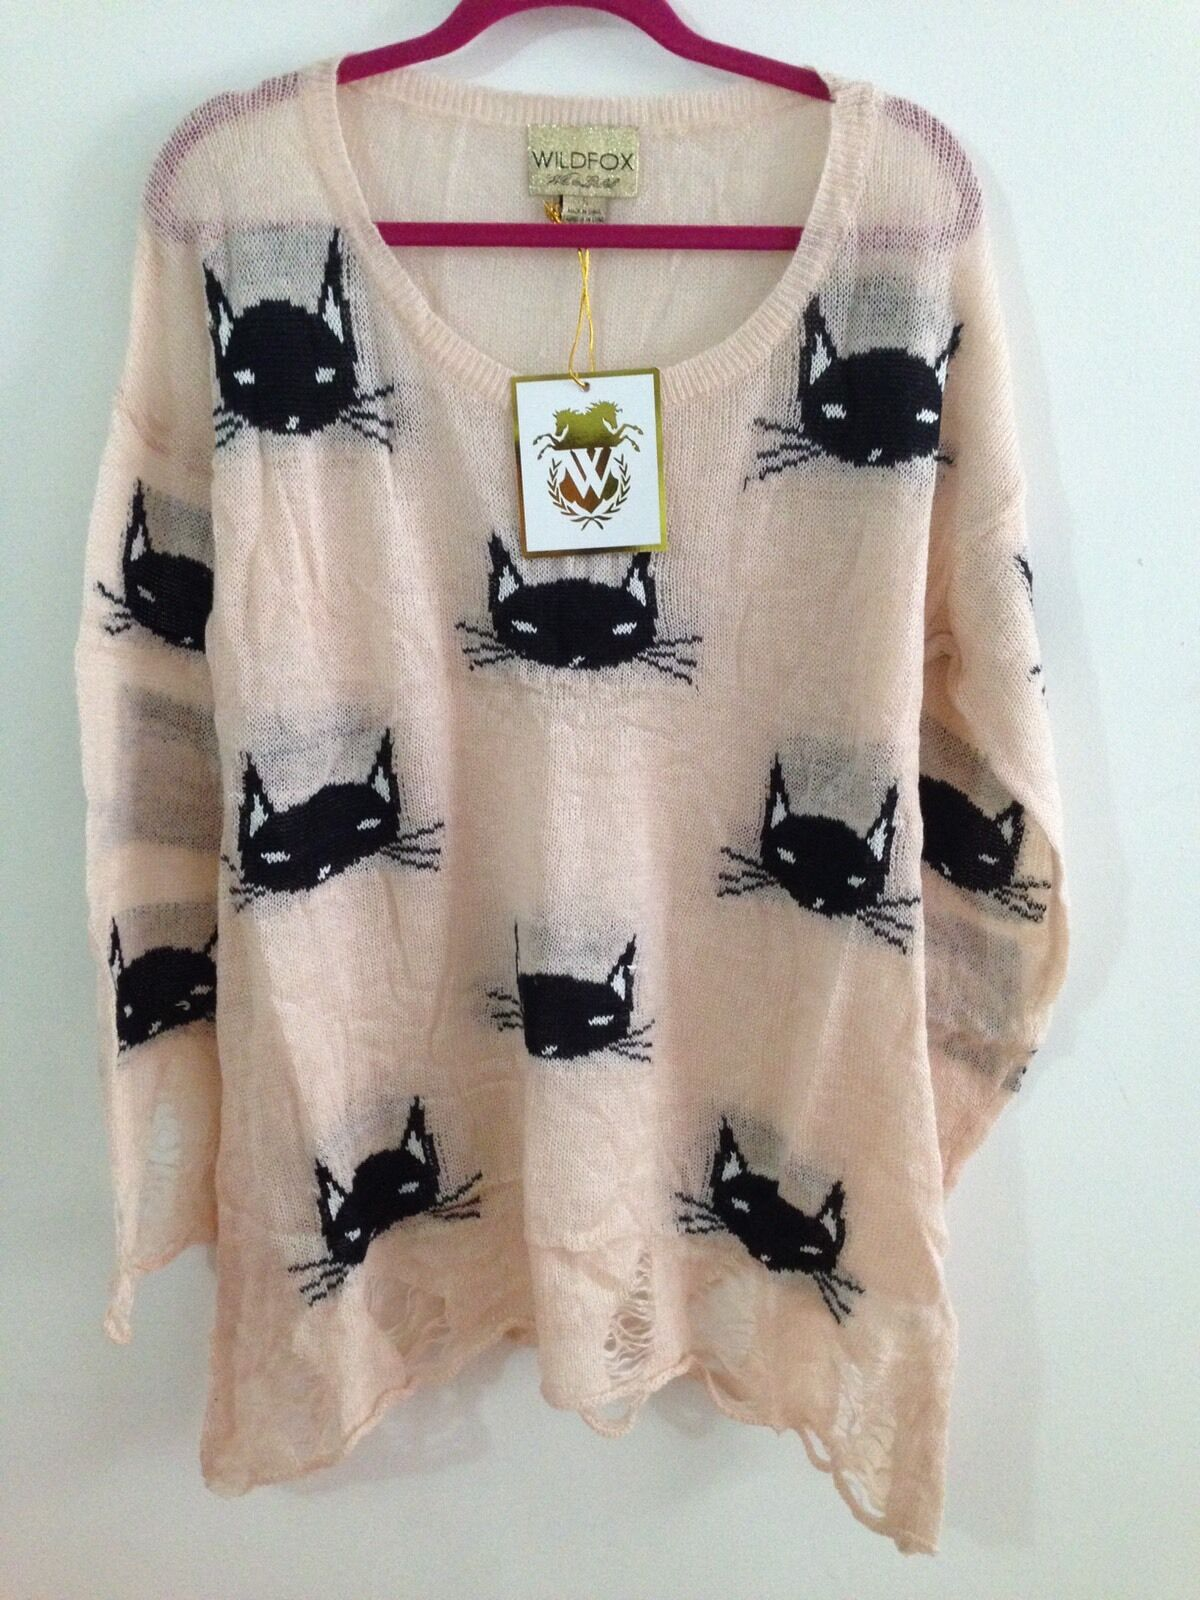 BRAND BRAND BRAND NEW- Wildfox-Women's Oversized Destroyed Kitty Sweater- Pink- OVERSIZED S cb1eb0